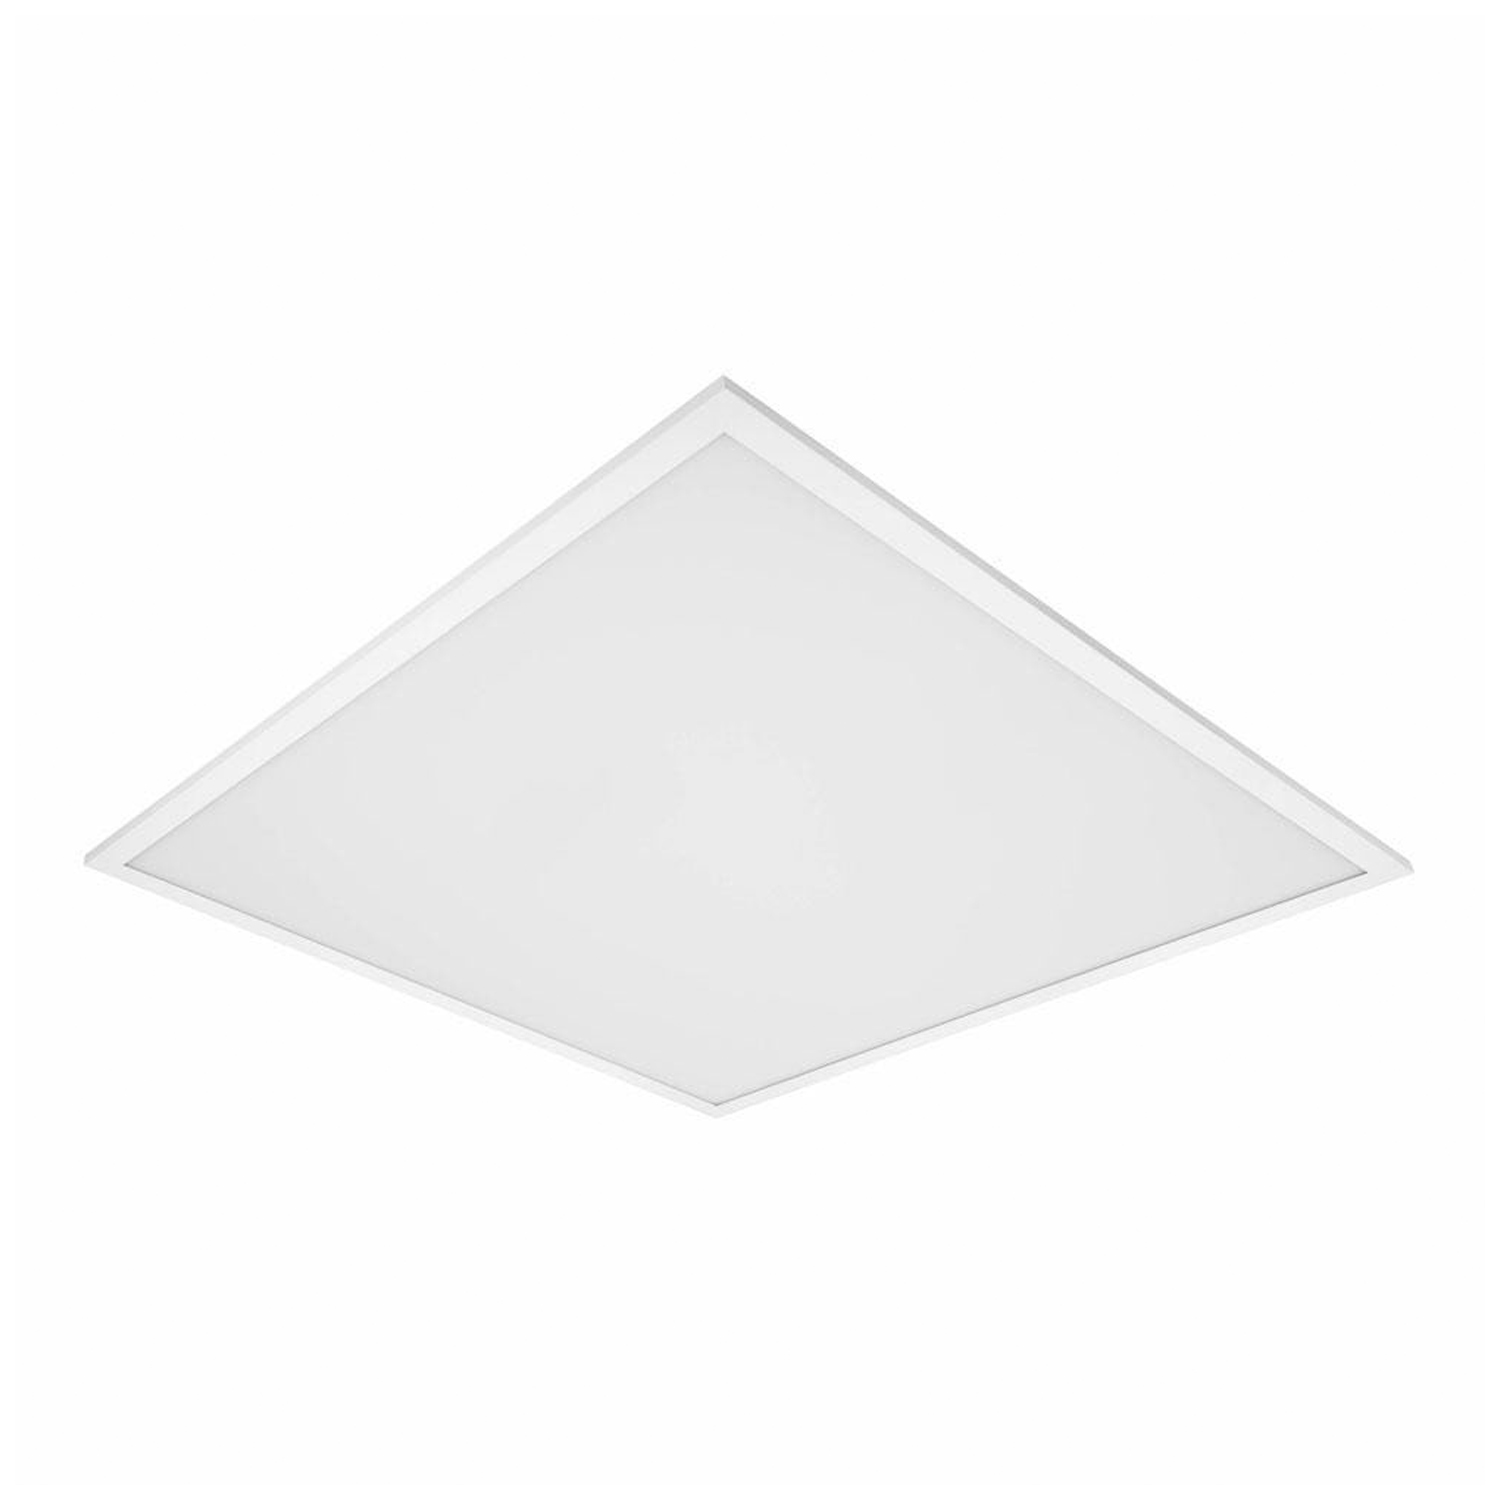 Ledvance LED Panel 60x60cm 3000K 36W IP54 | Dali Dimmable - Replacer for 4x18W